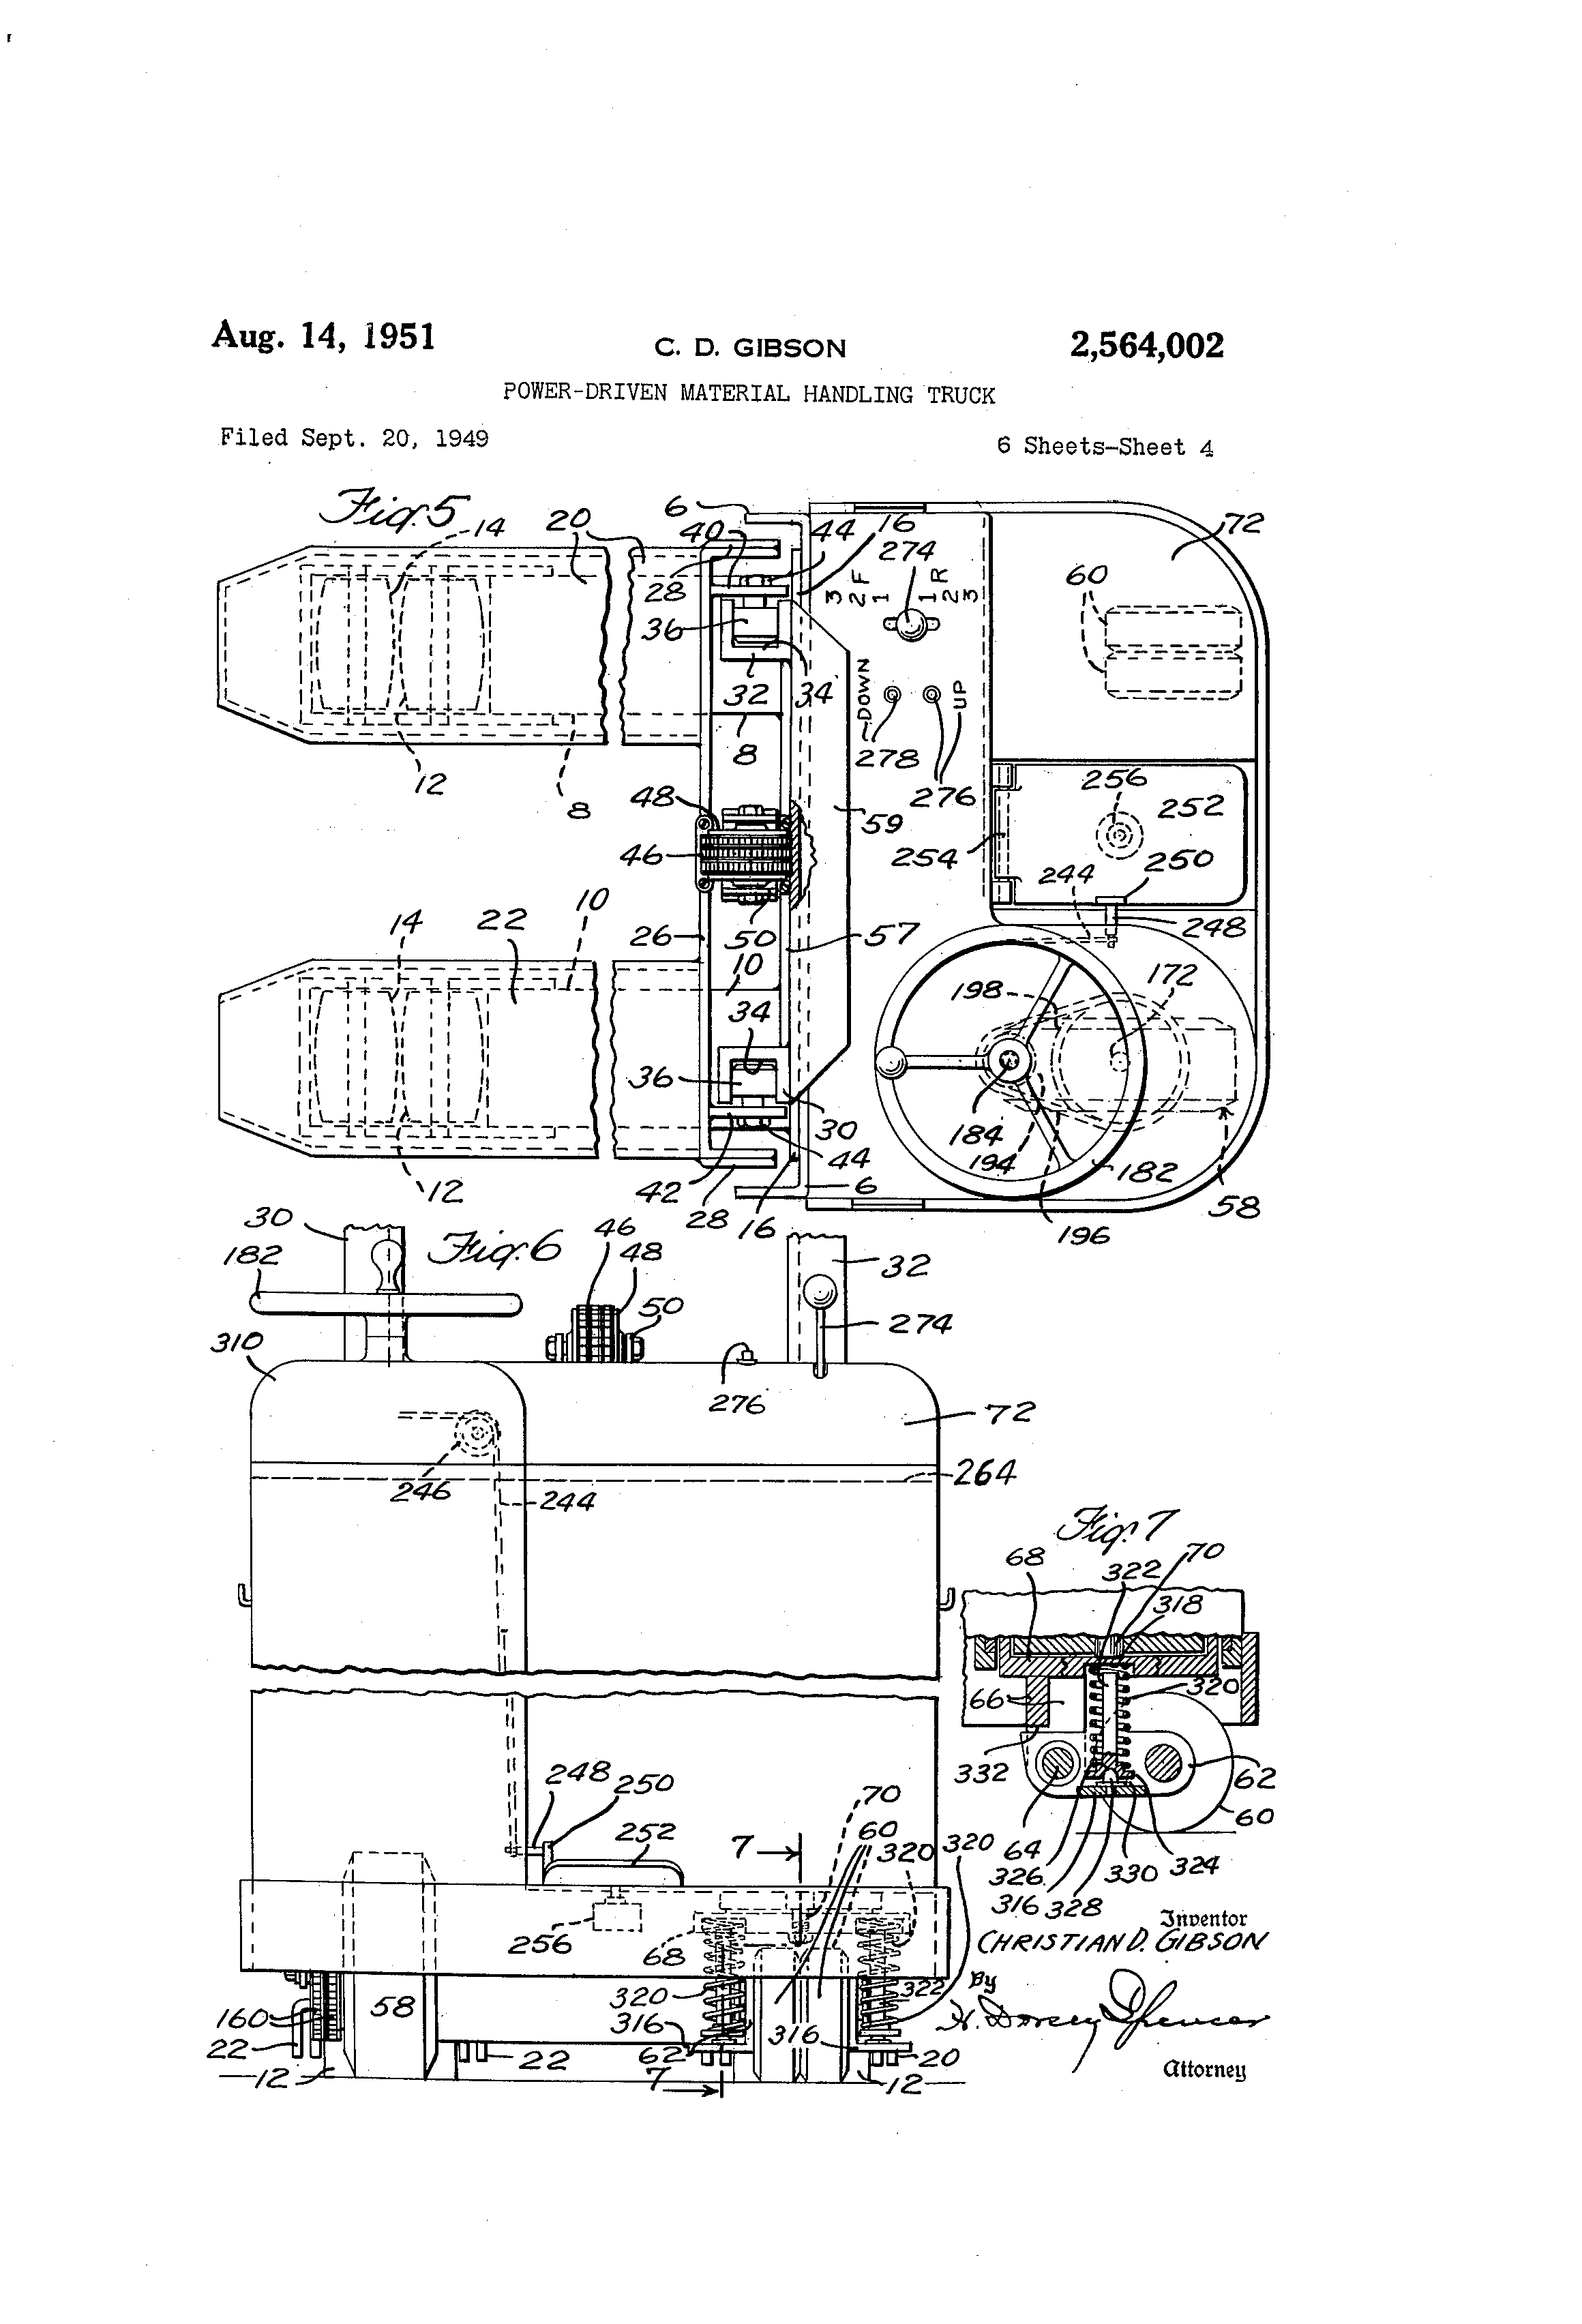 patent us2564002 - power-driven material handling truck